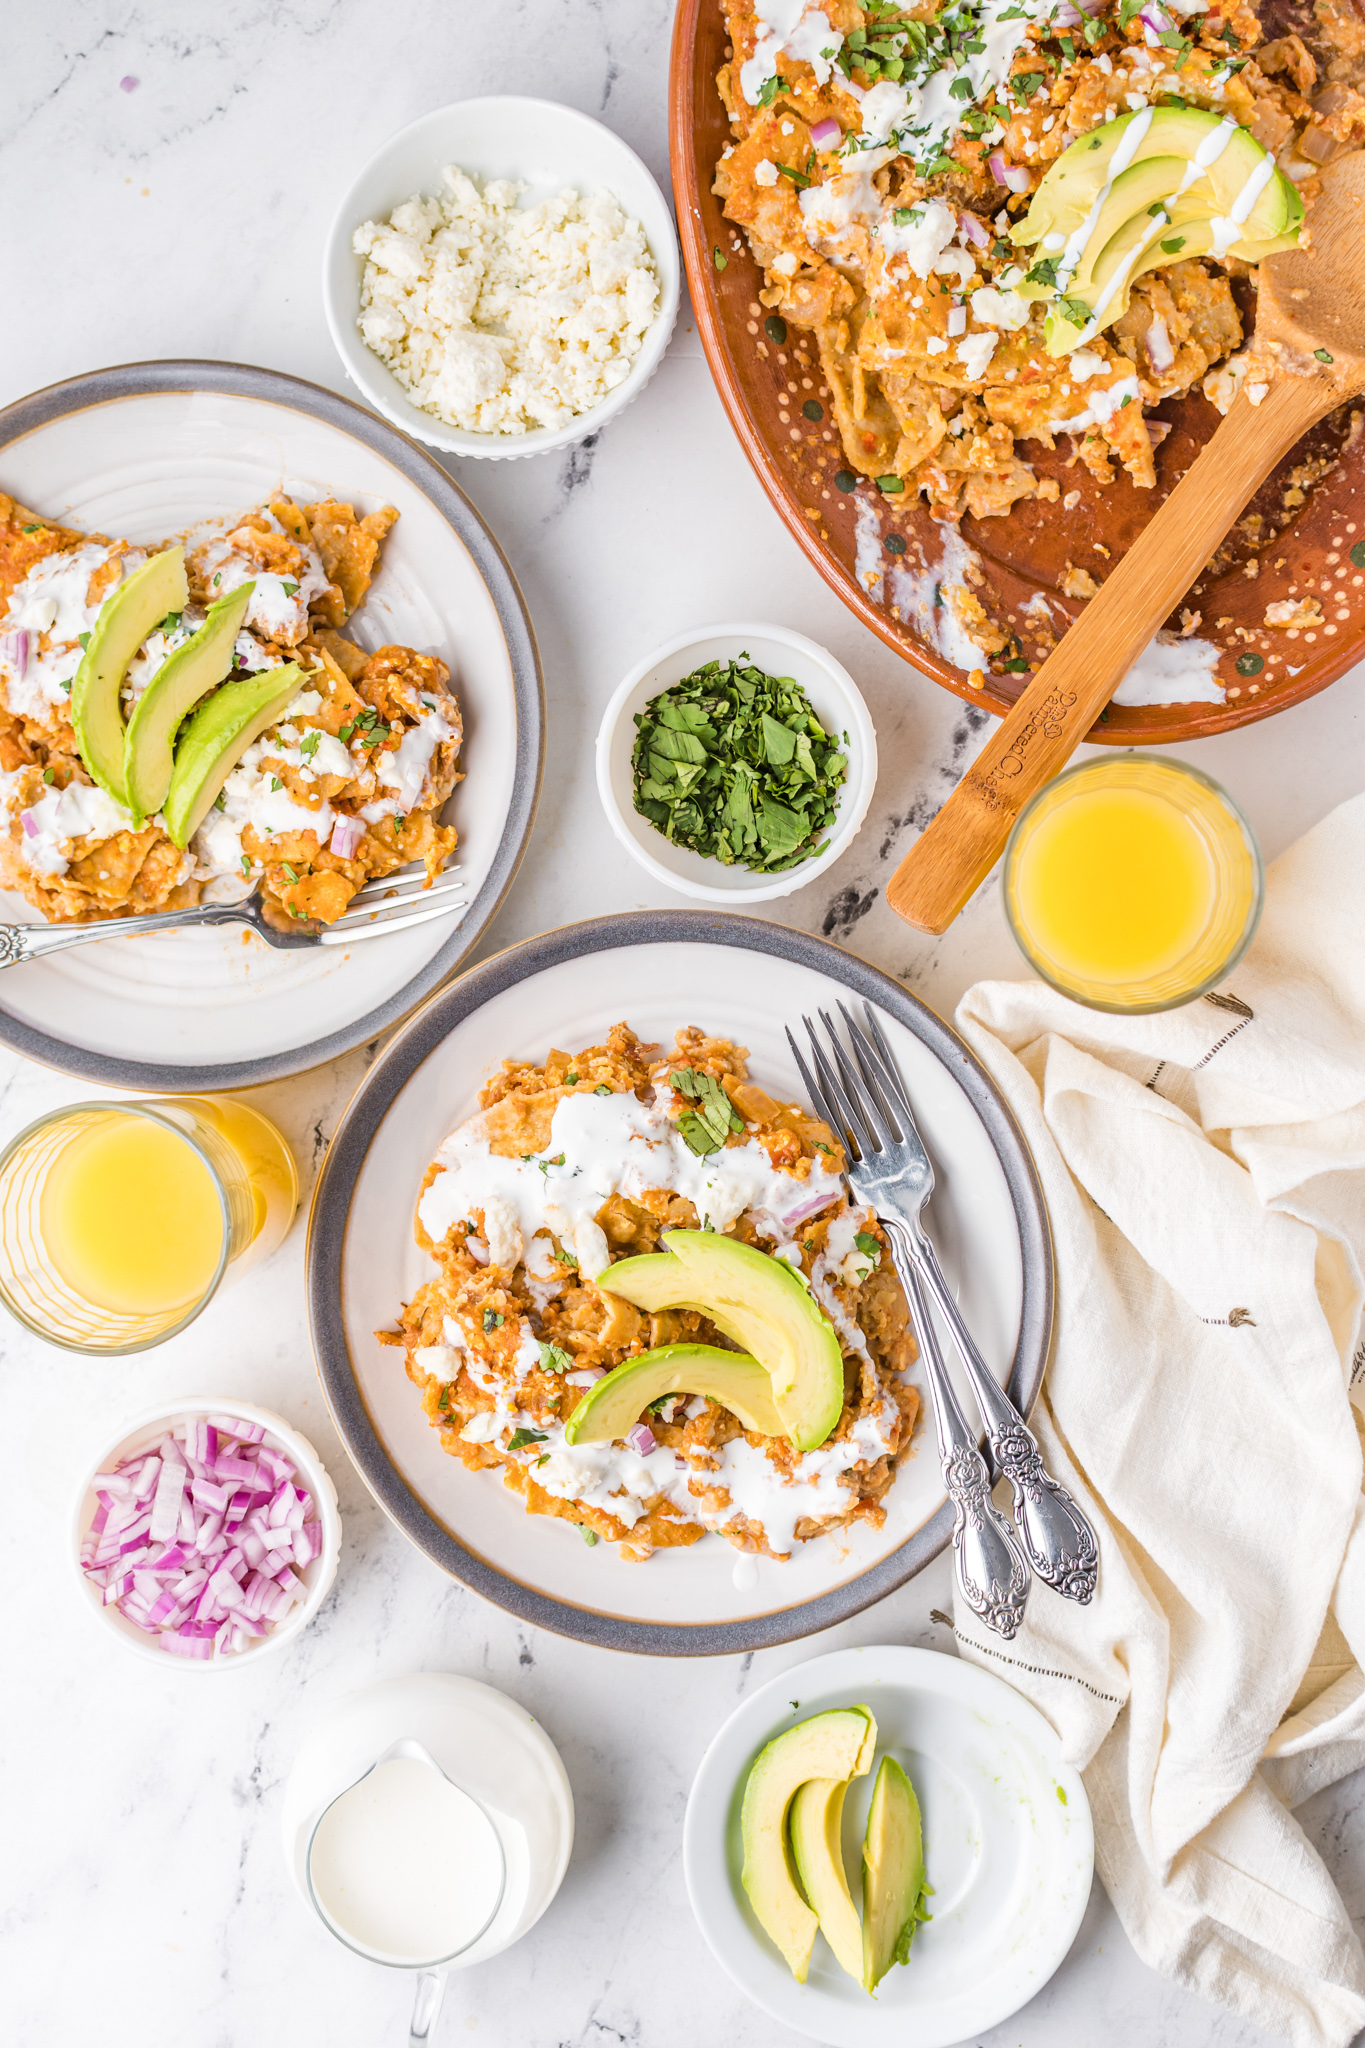 Chilaquiles Rojos Recipe with orange juice and avocado on top.